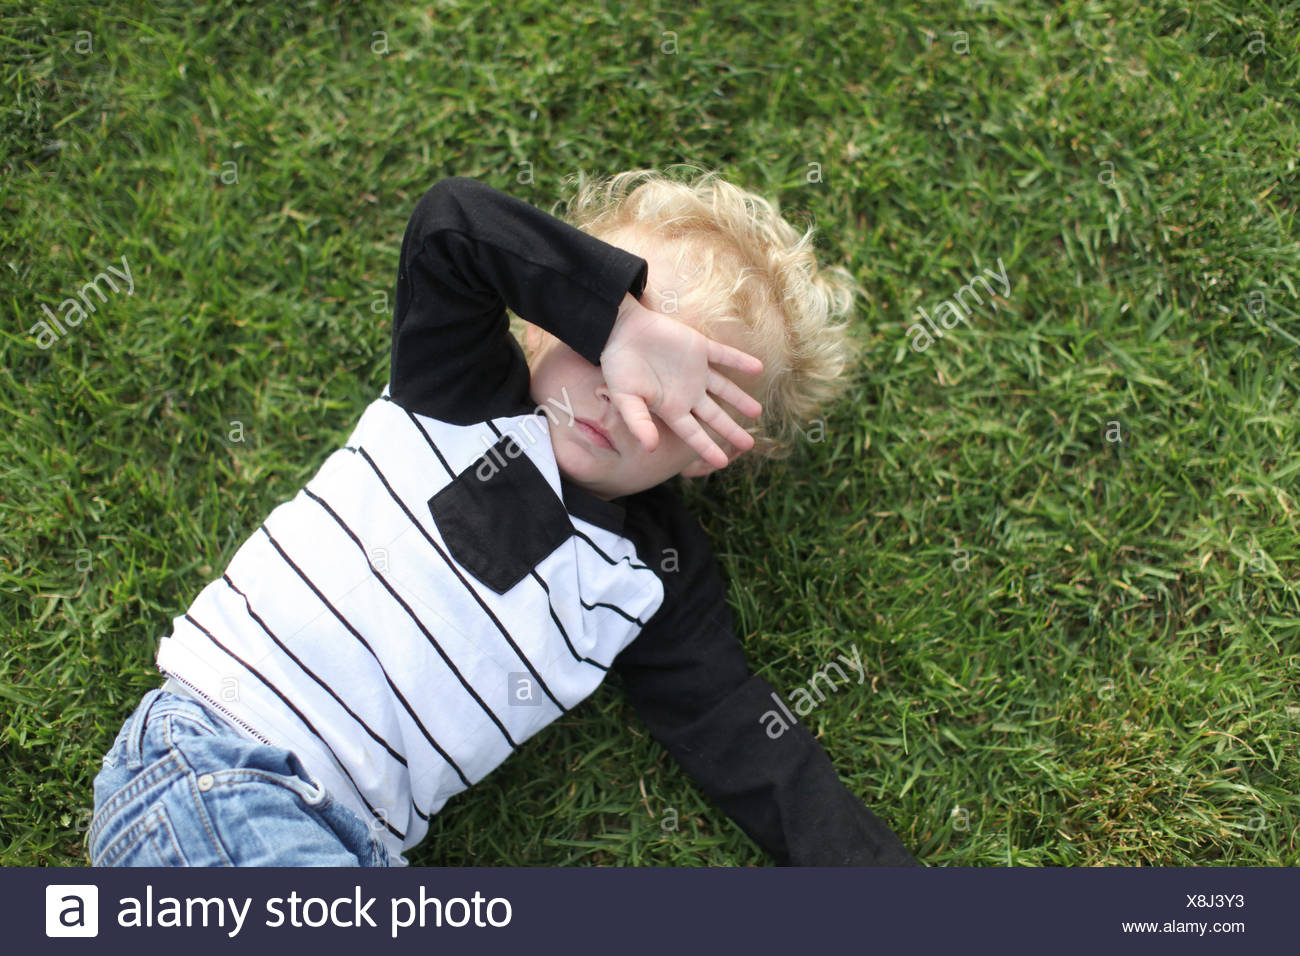 Boy lying on the ground with hand covering face - Stock Image